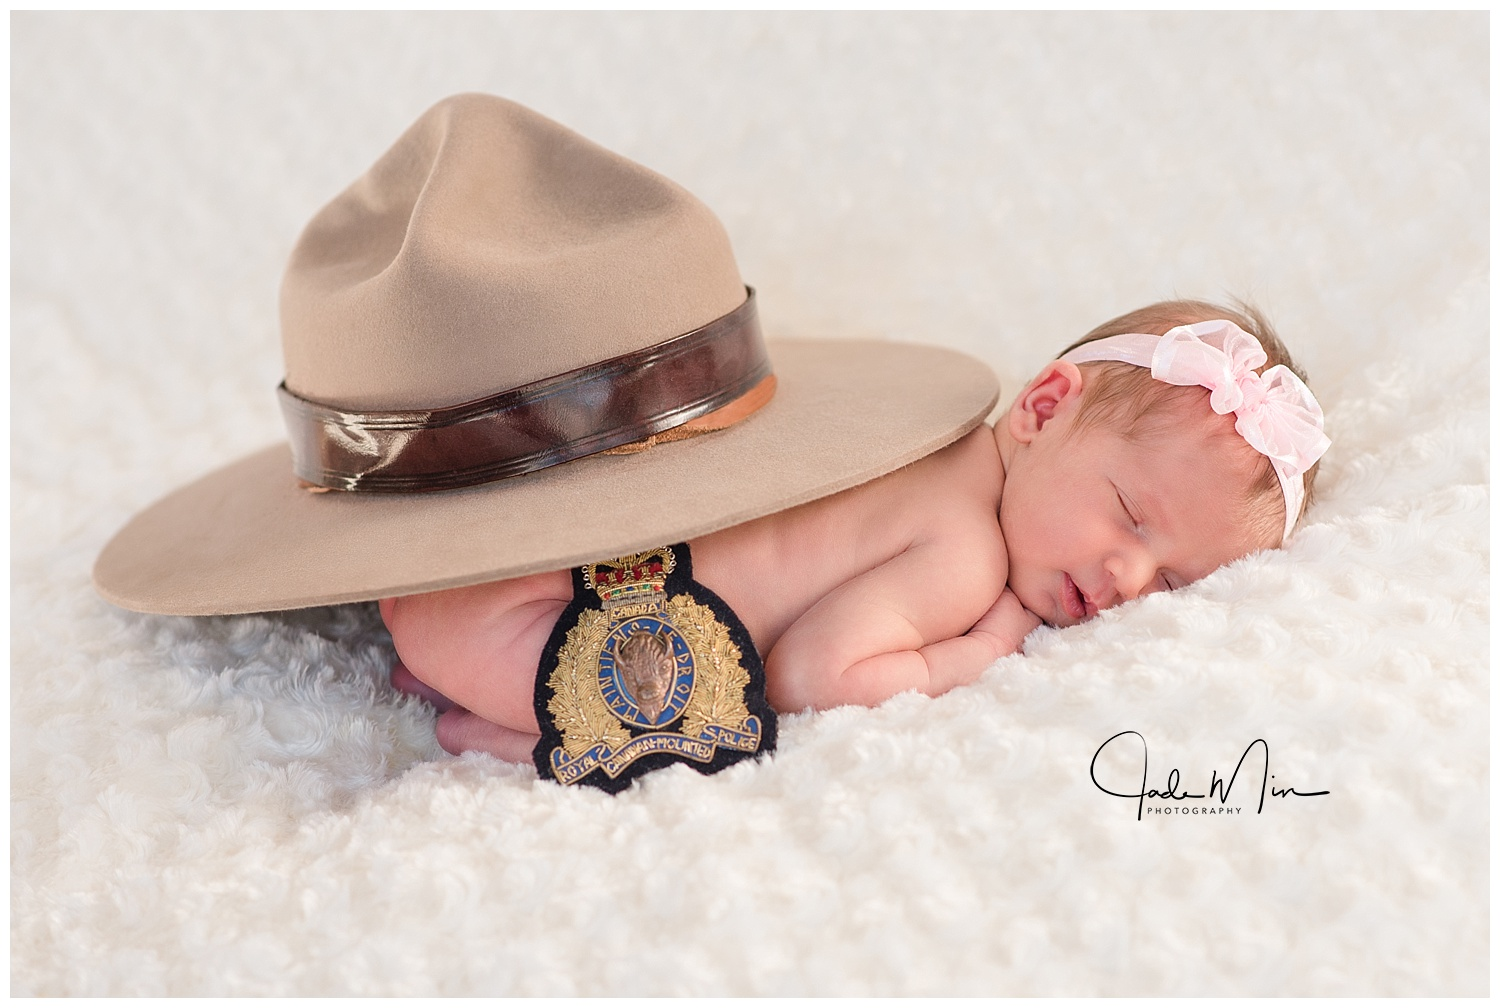 The hat and badge pictured here belongs to Crista's beloved mother, Kimberley Shaughan Hall Bronson, who passed away in 2016. She was a sergeant in the Royal Canadian Mounted Police Department and was very respected in her community and loved by many. Emilia looks so peaceful here, and I can imagine that her grandmother was showering her with angel lullabies.